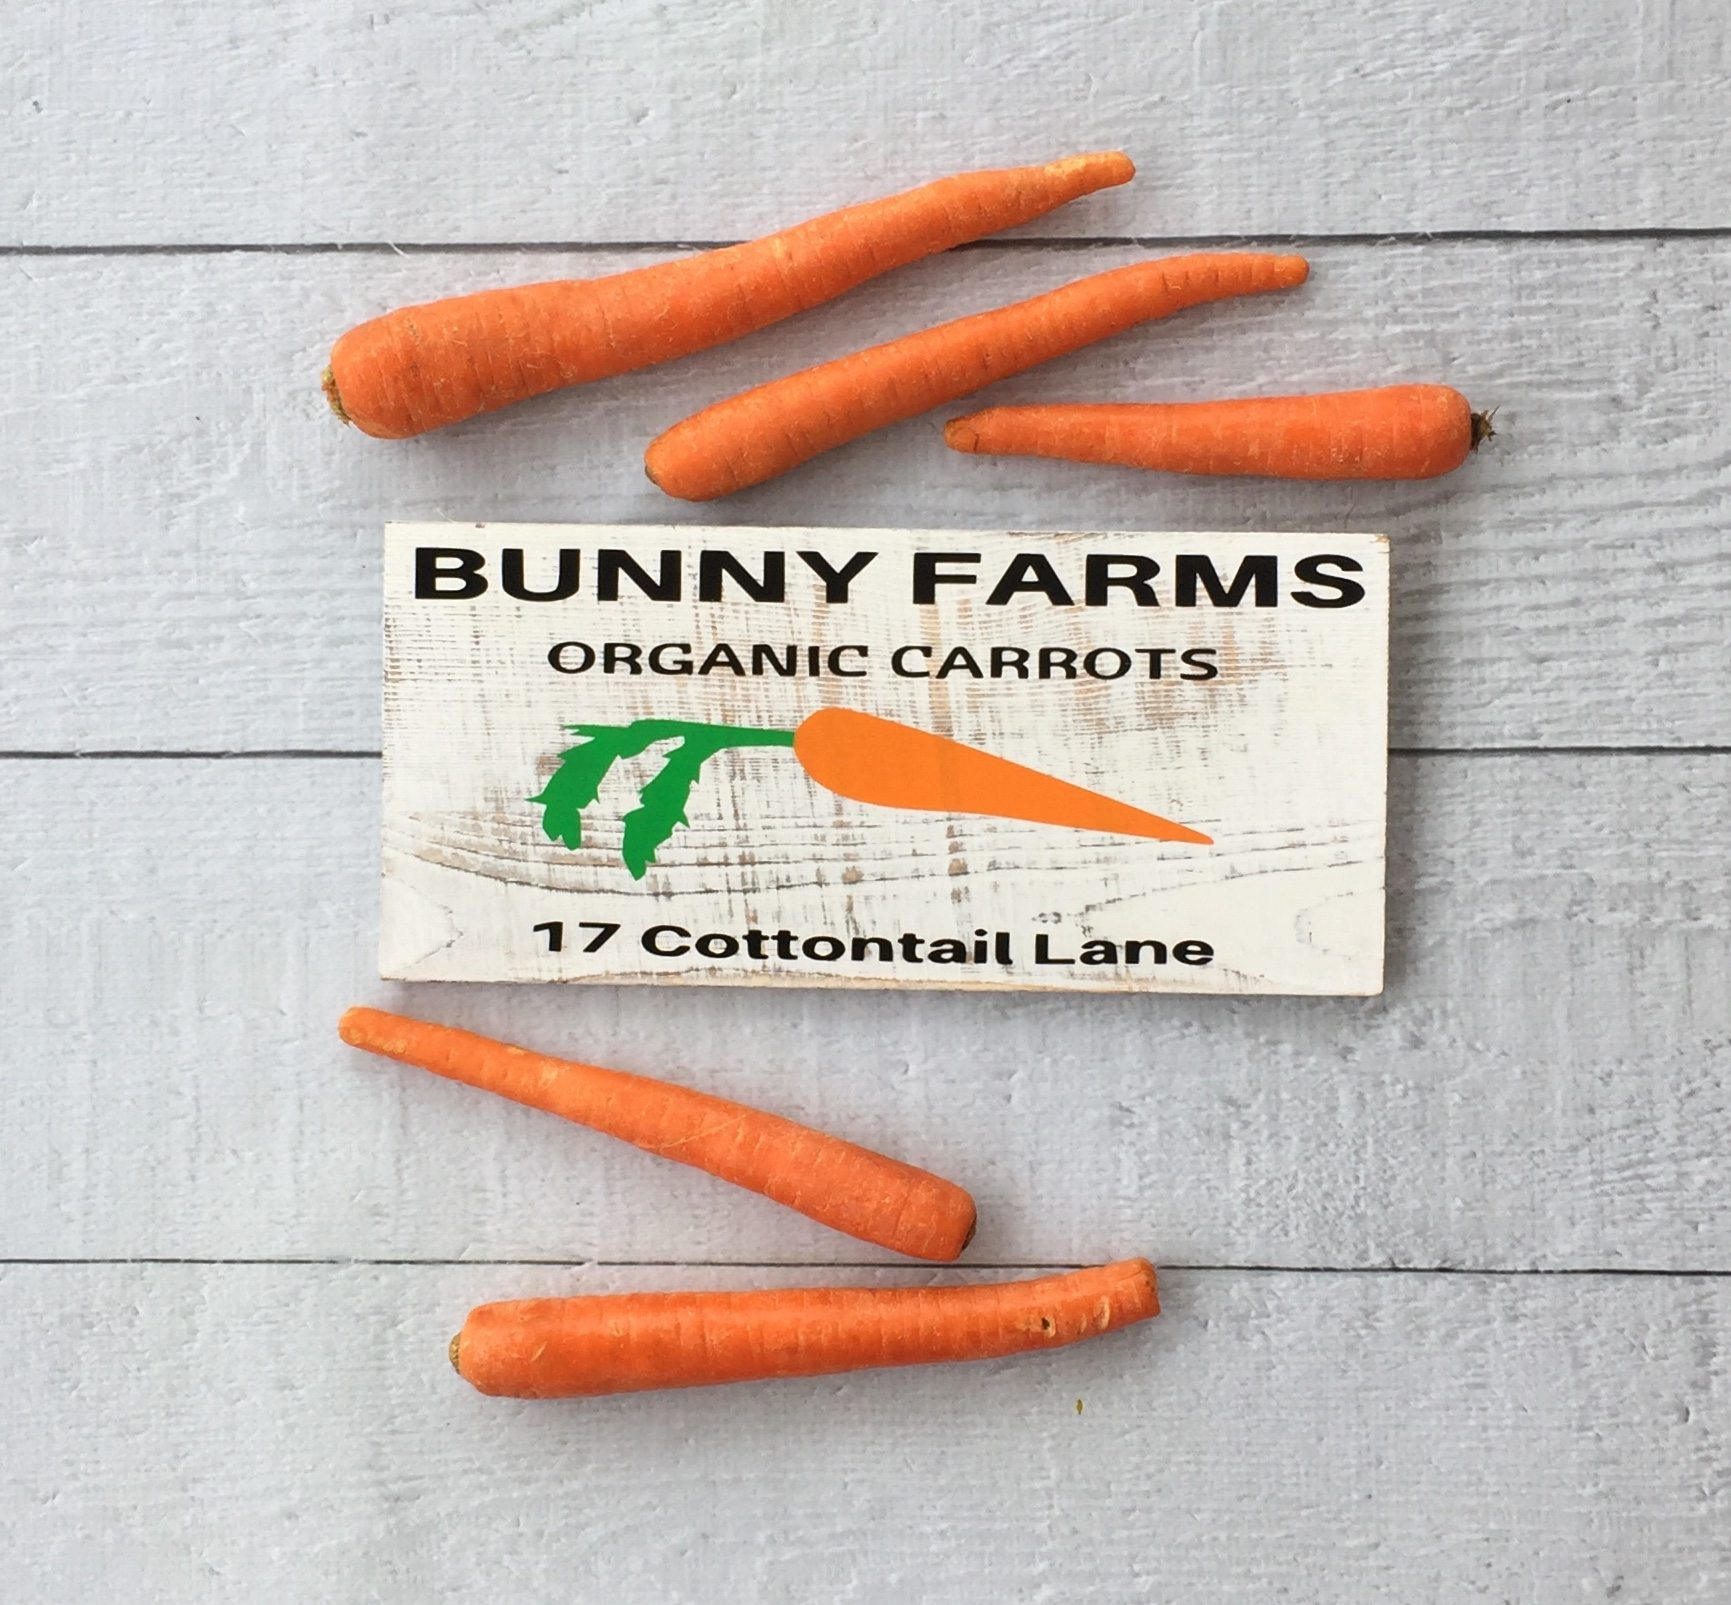 Carrots and bunny sign